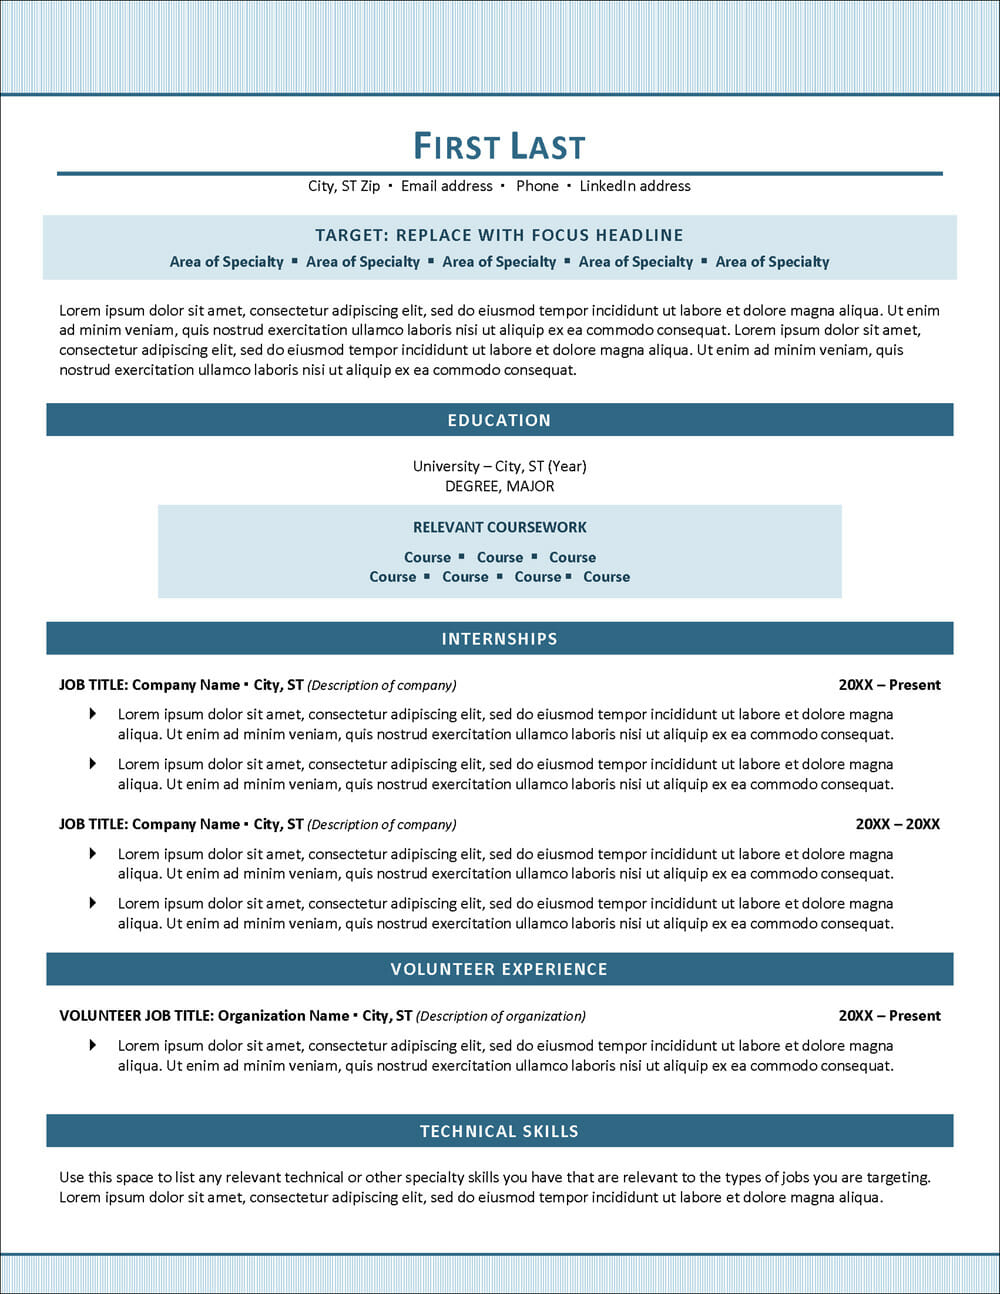 Student Resume Examples & Writing Tips: How To Write Your First Resume